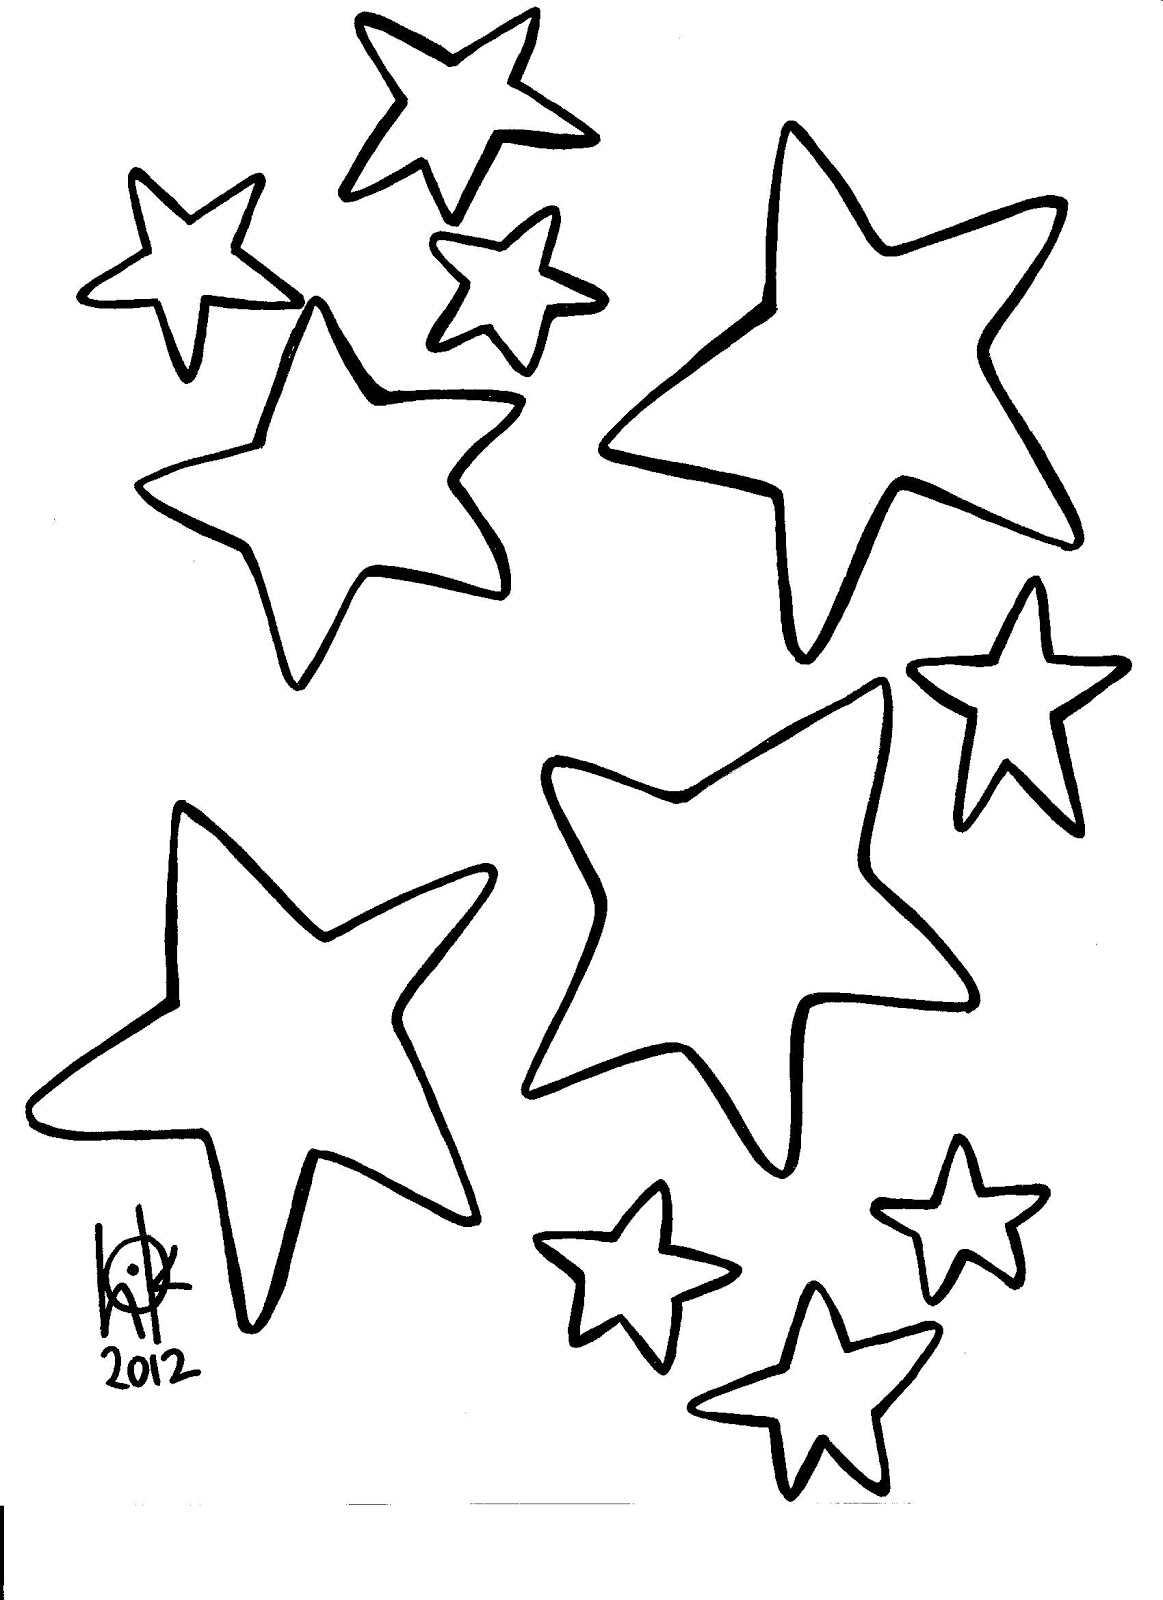 christmas star coloring pages printable | Blank Star Template - ClipArt Best